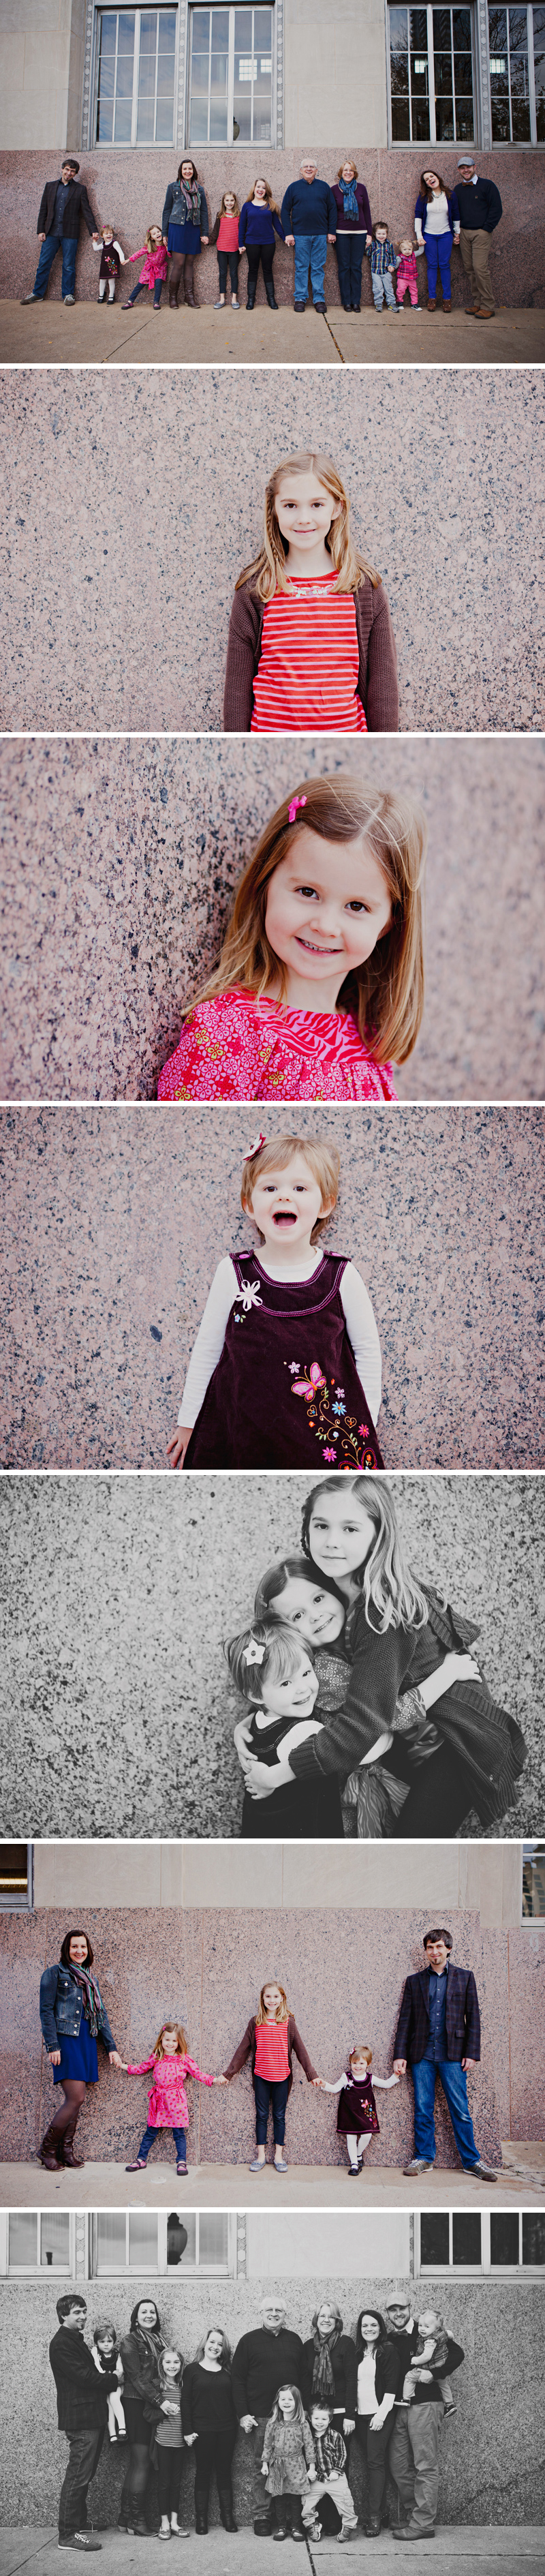 Dallas-Family-Photographerc074